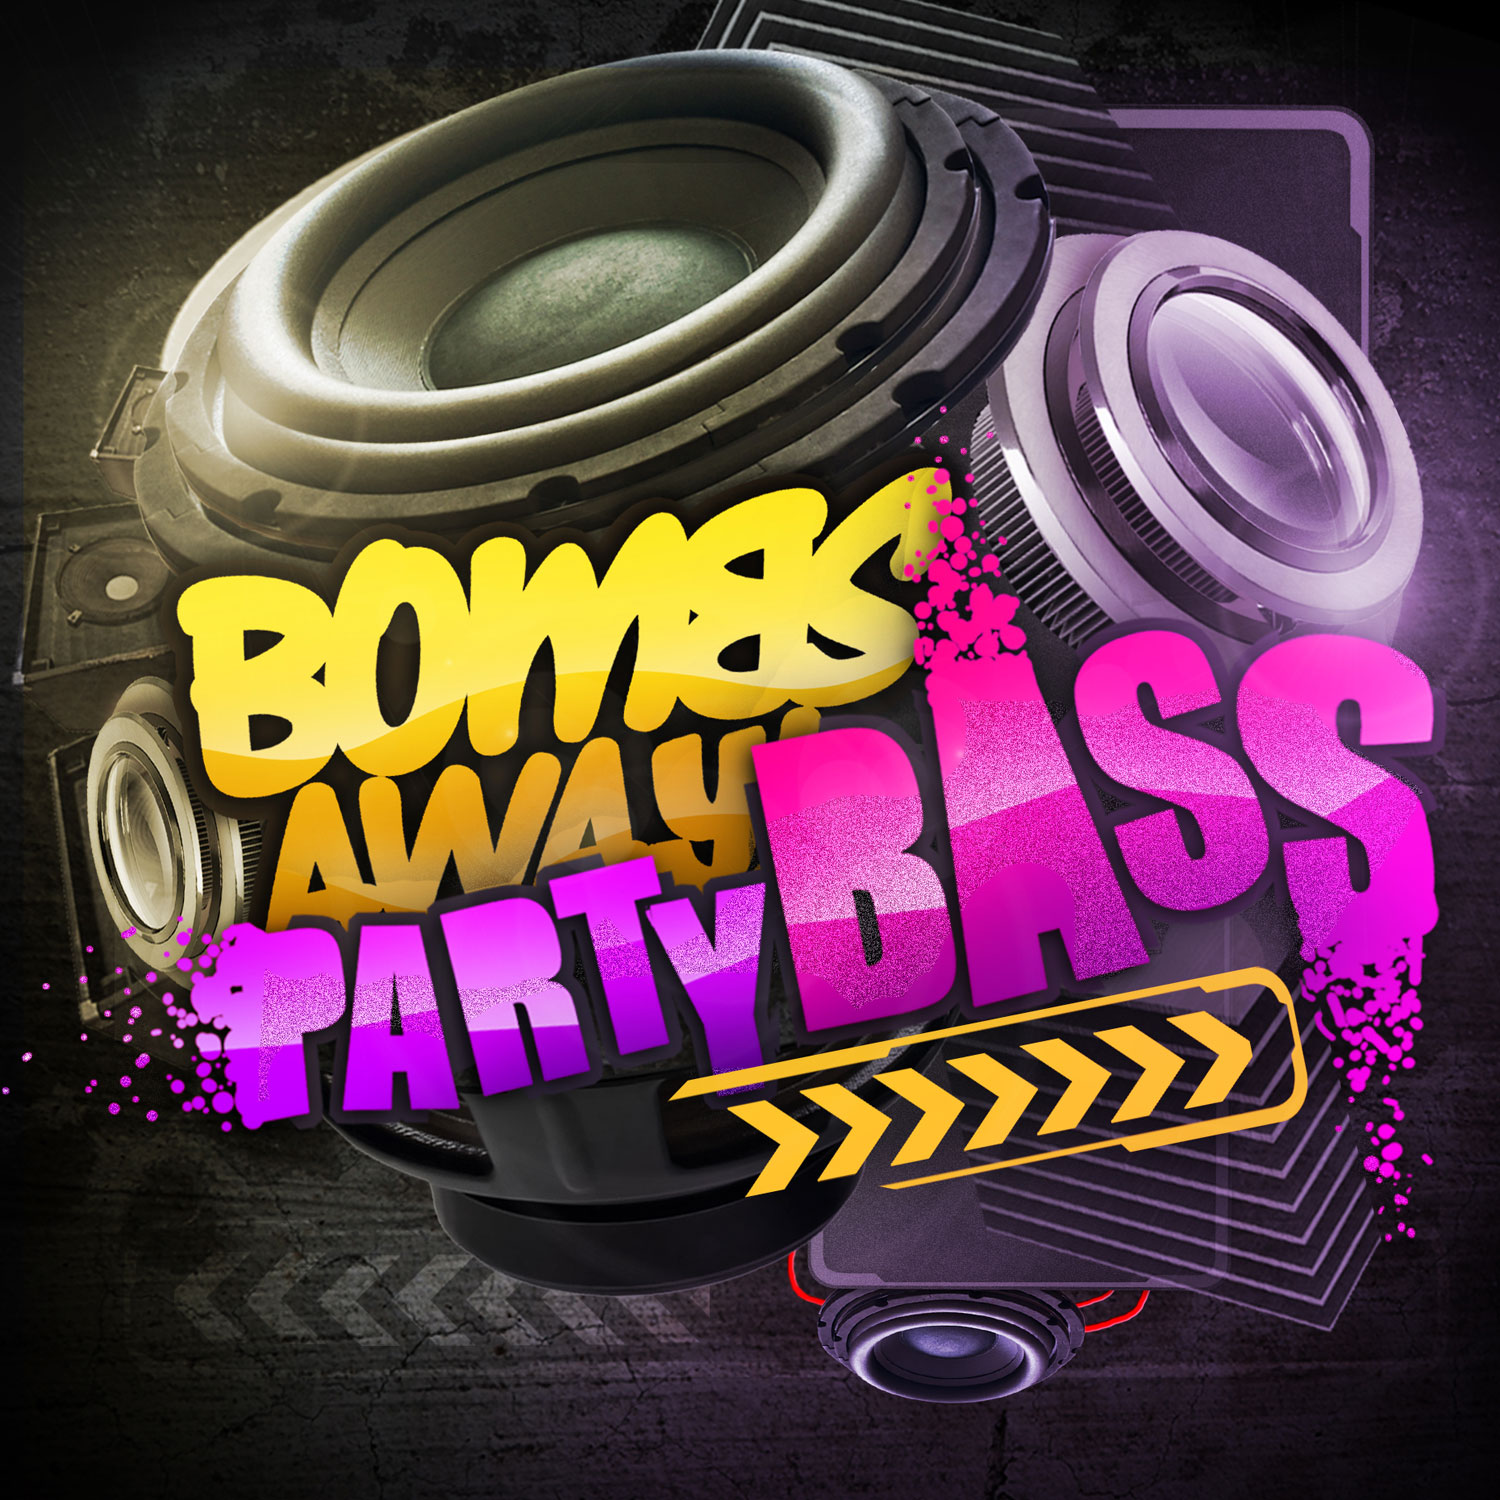 Bombs Away feat. The Twins - Party Bass (Radio Edit)